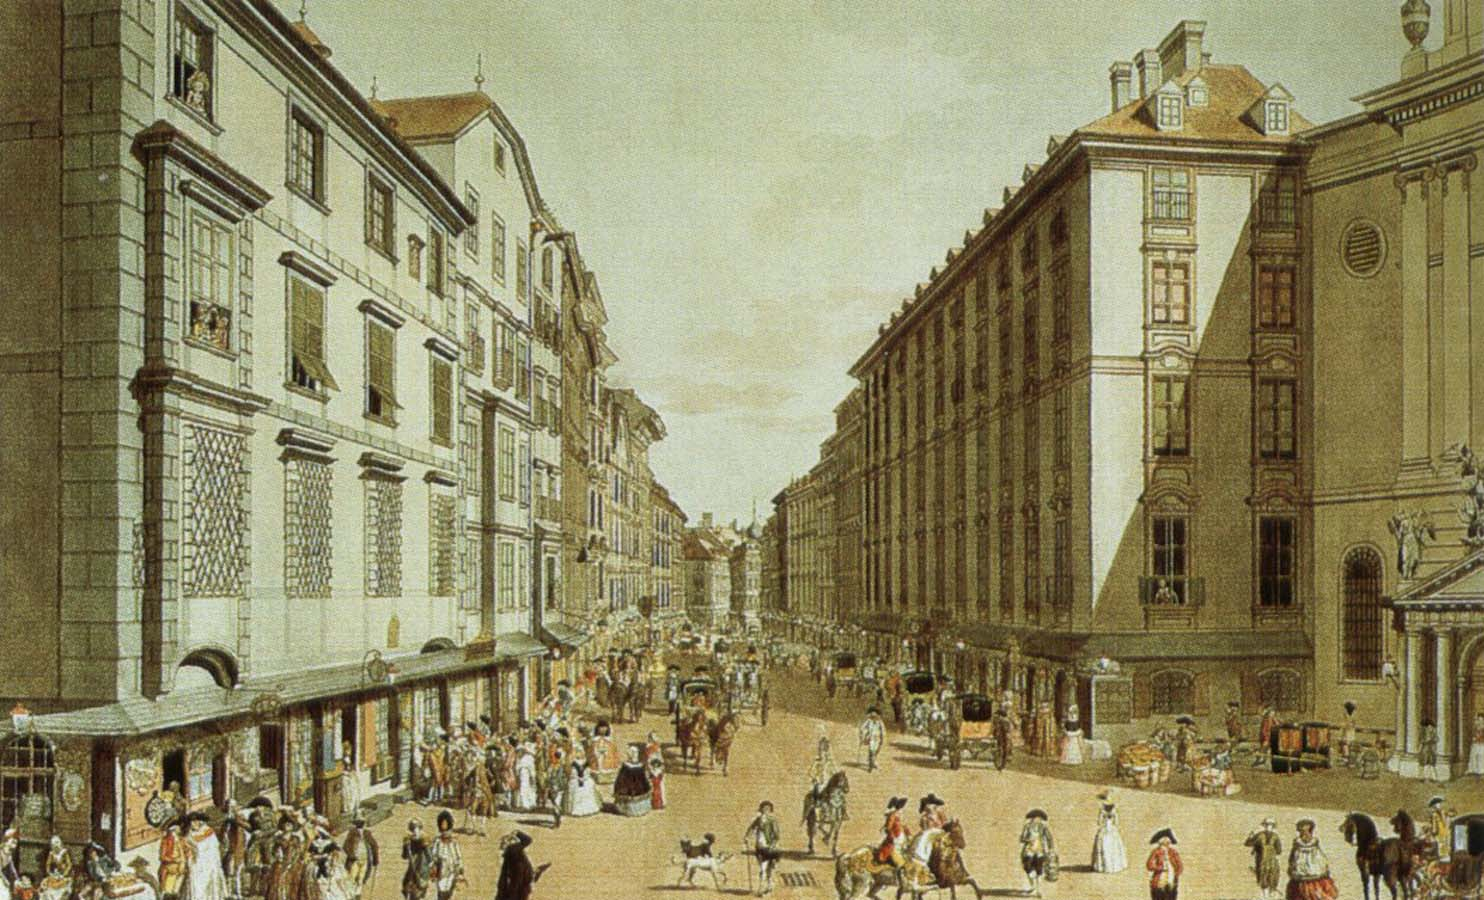 Vienna In The 18th Century A View Of One Of Its Streets